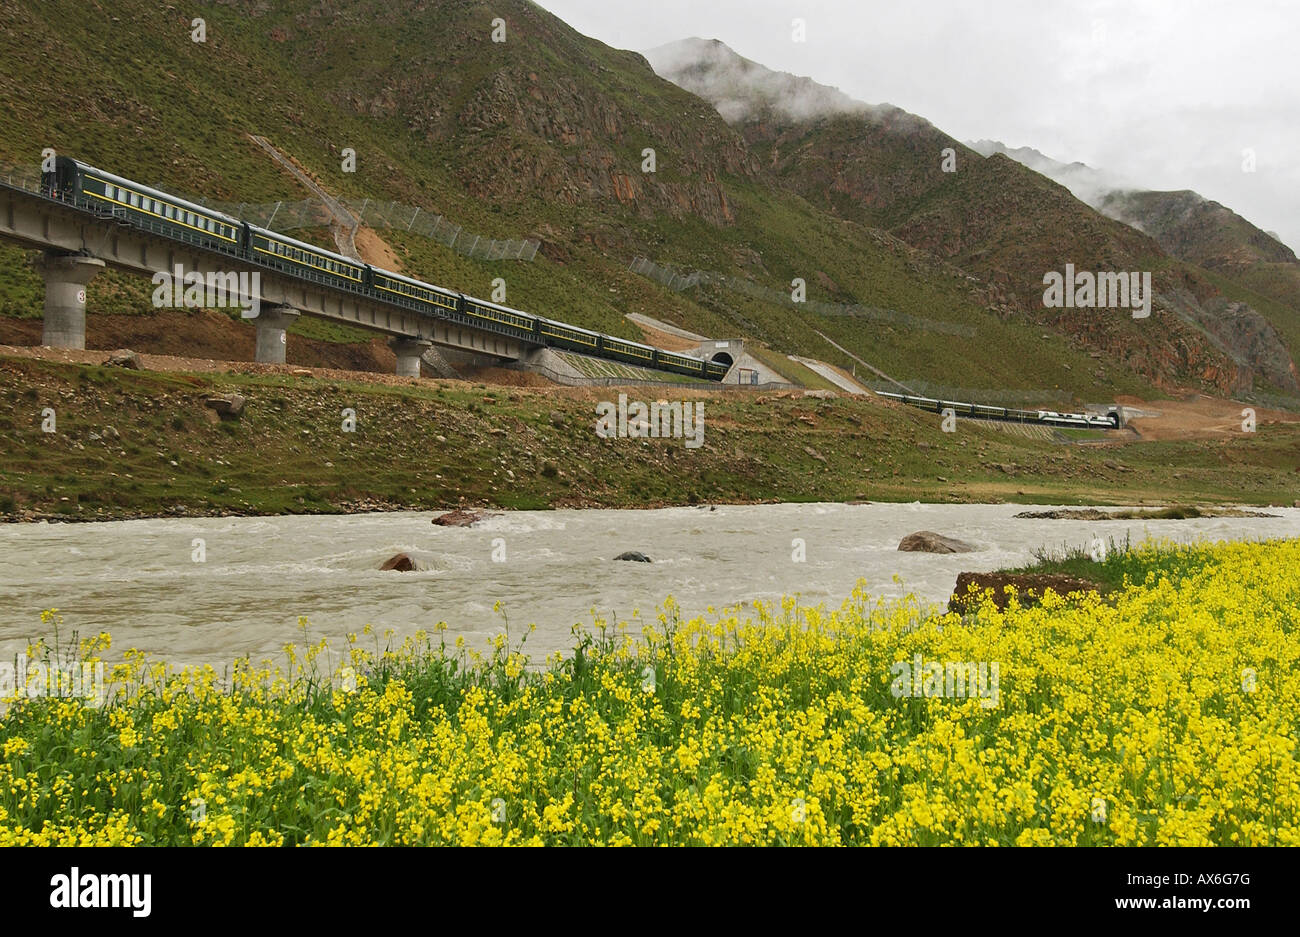 A train passes through a tunnel of the Tibet railway, which opened in July 2006. - Stock Image